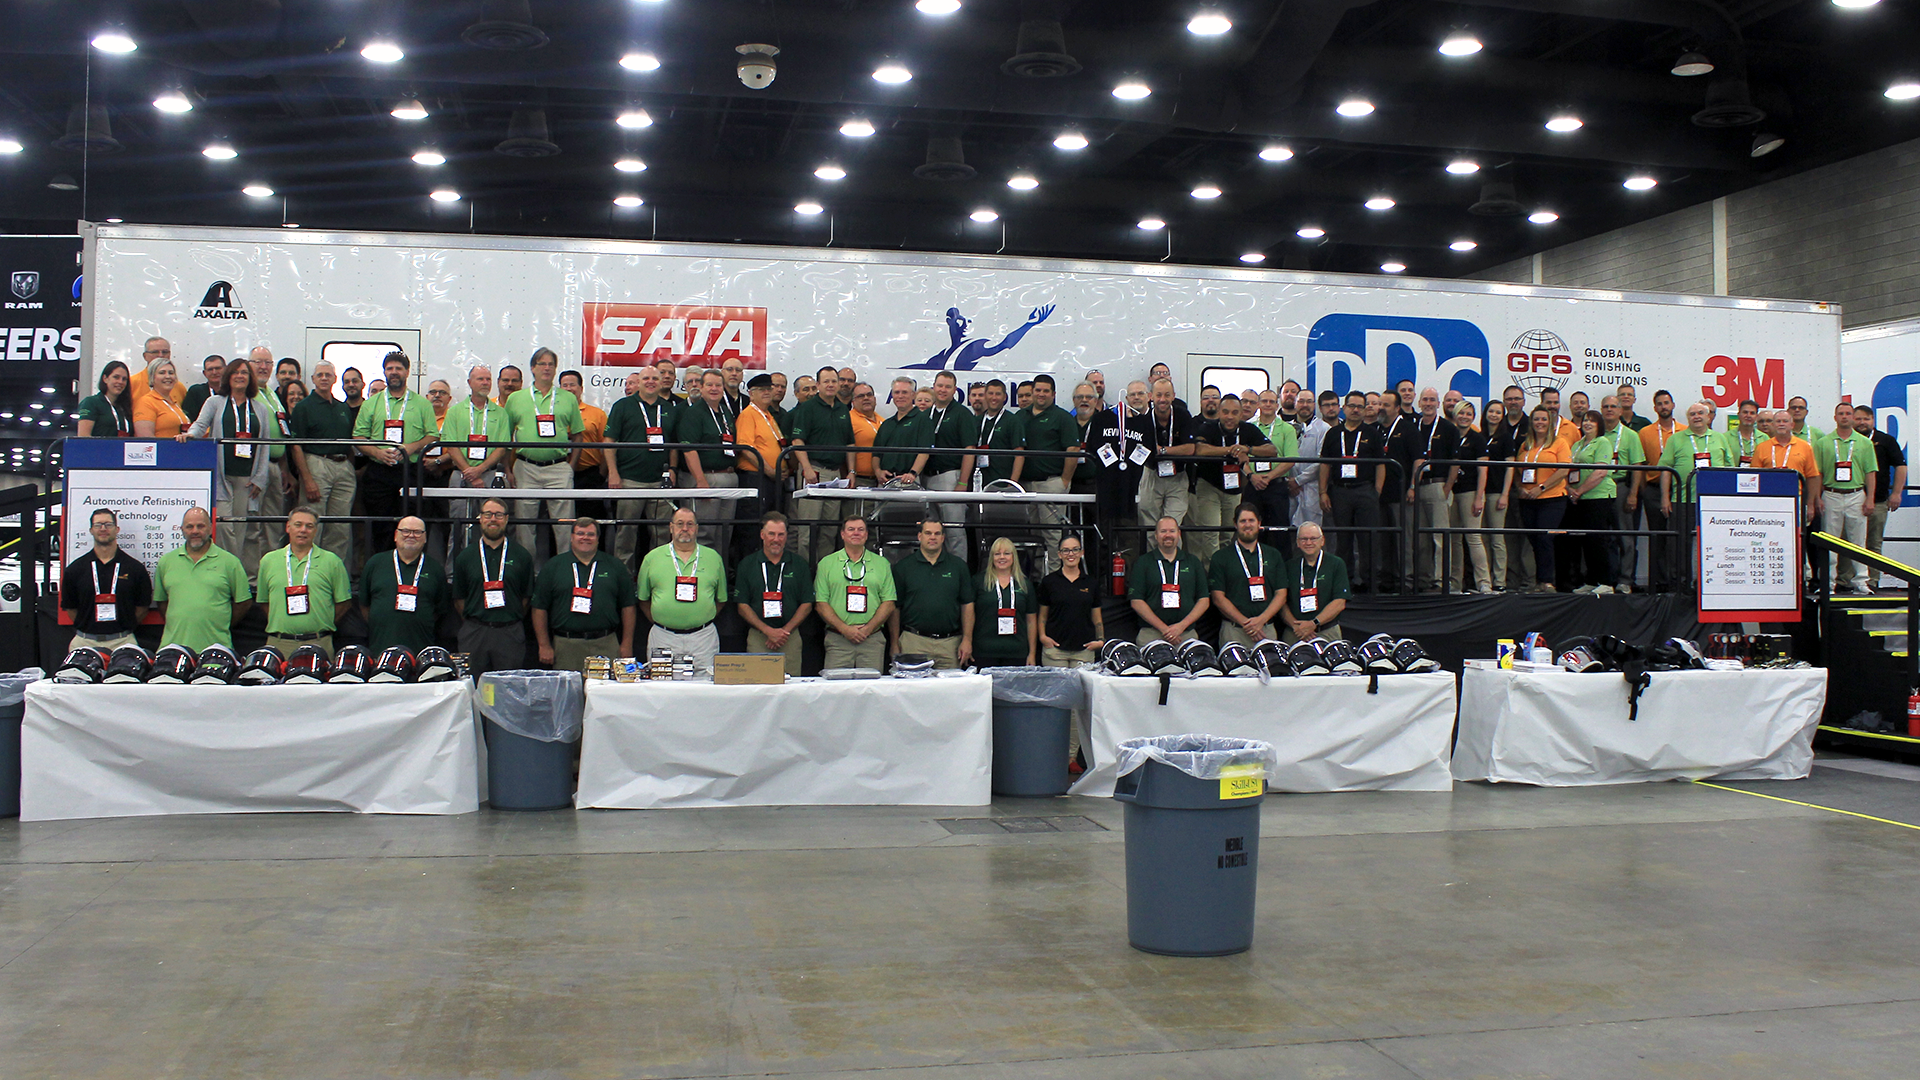 A group shot of the volunteers for the Automotive Refinishing Technology and Collision Repair Technology competitions.